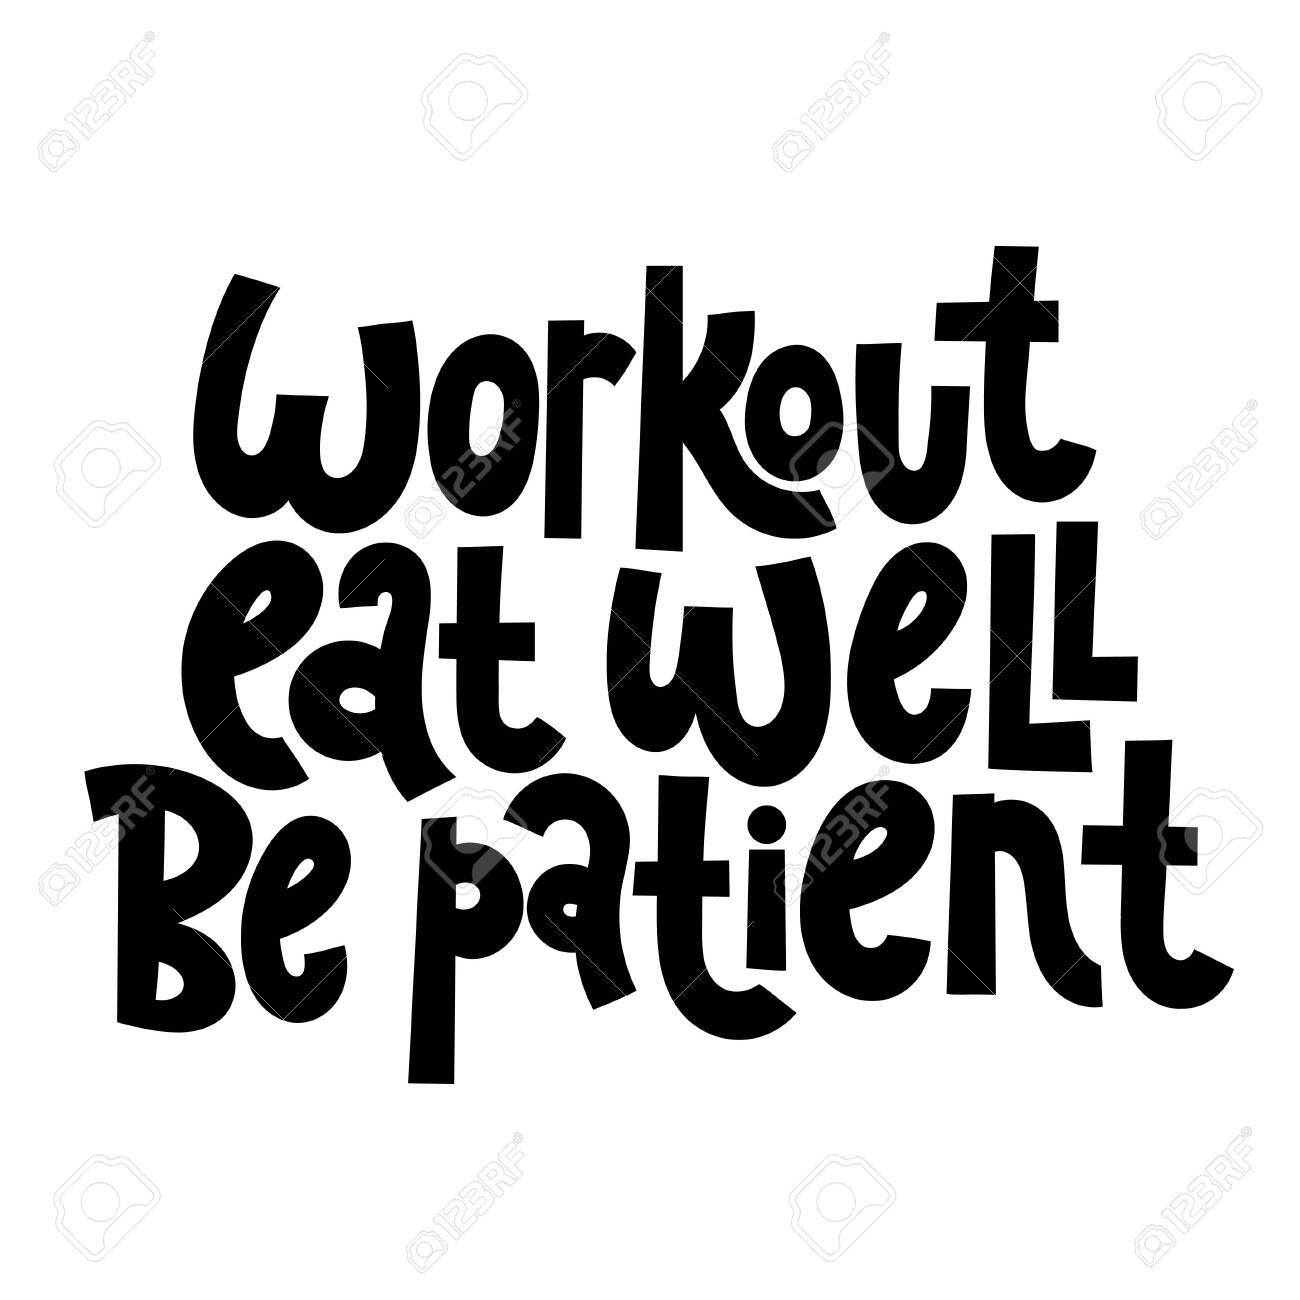 Fitness Motivational Quotes Royalty Free Cliparts Vectors And Stock Illustration Image 116131489